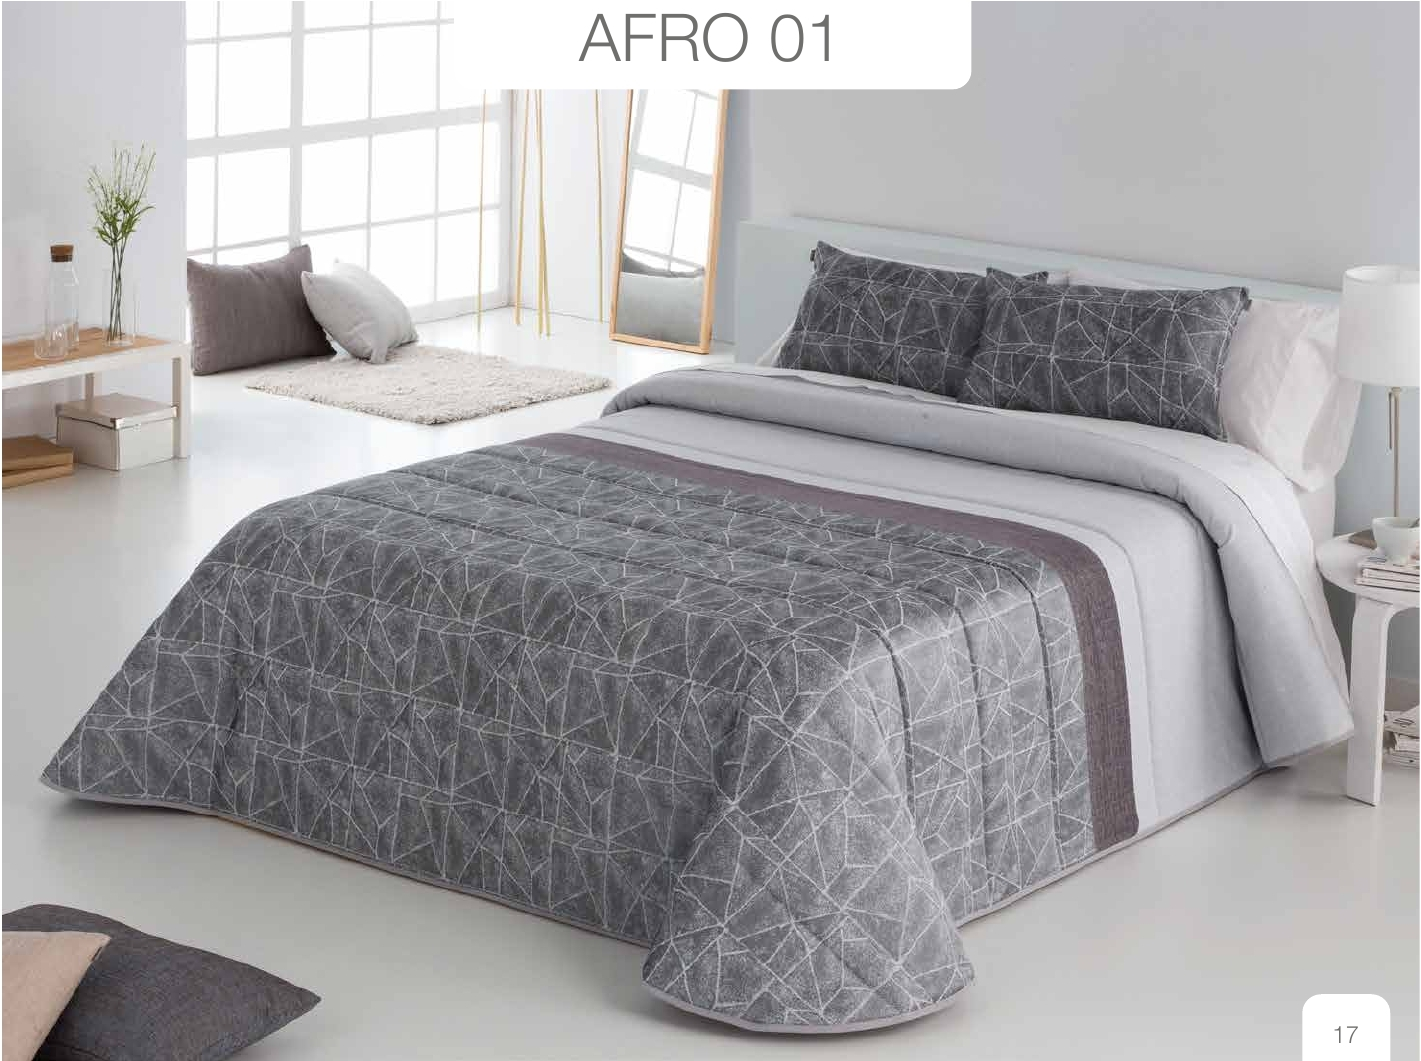 Conforter Bouti Jacquard Afro Gris